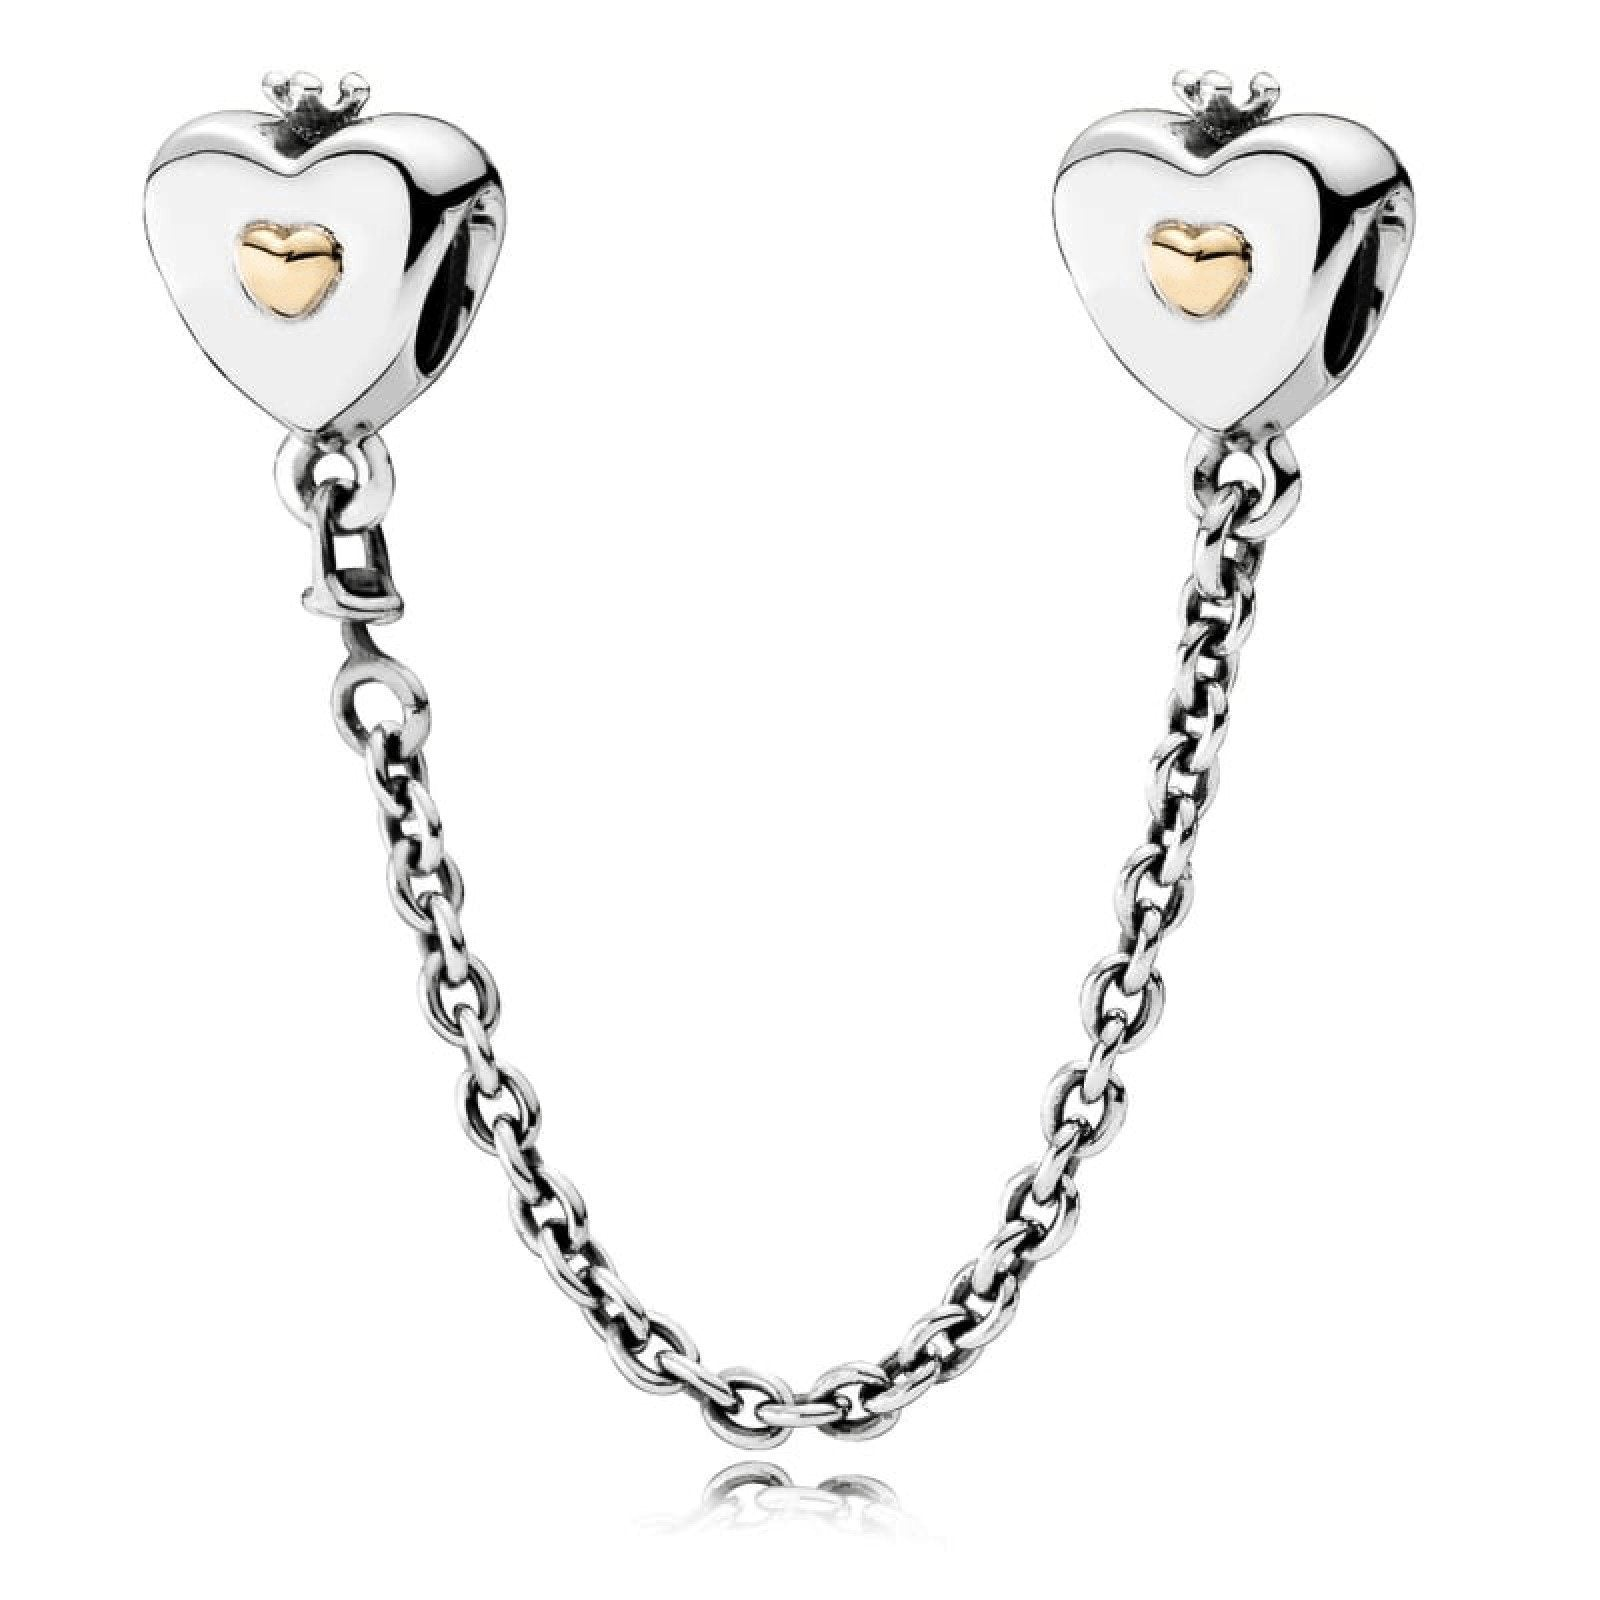 1c916bb1d Pandora Heart and Crown Safety Chain in Sterling Silver and 14kt Yellow  Gold Charms & Pendants